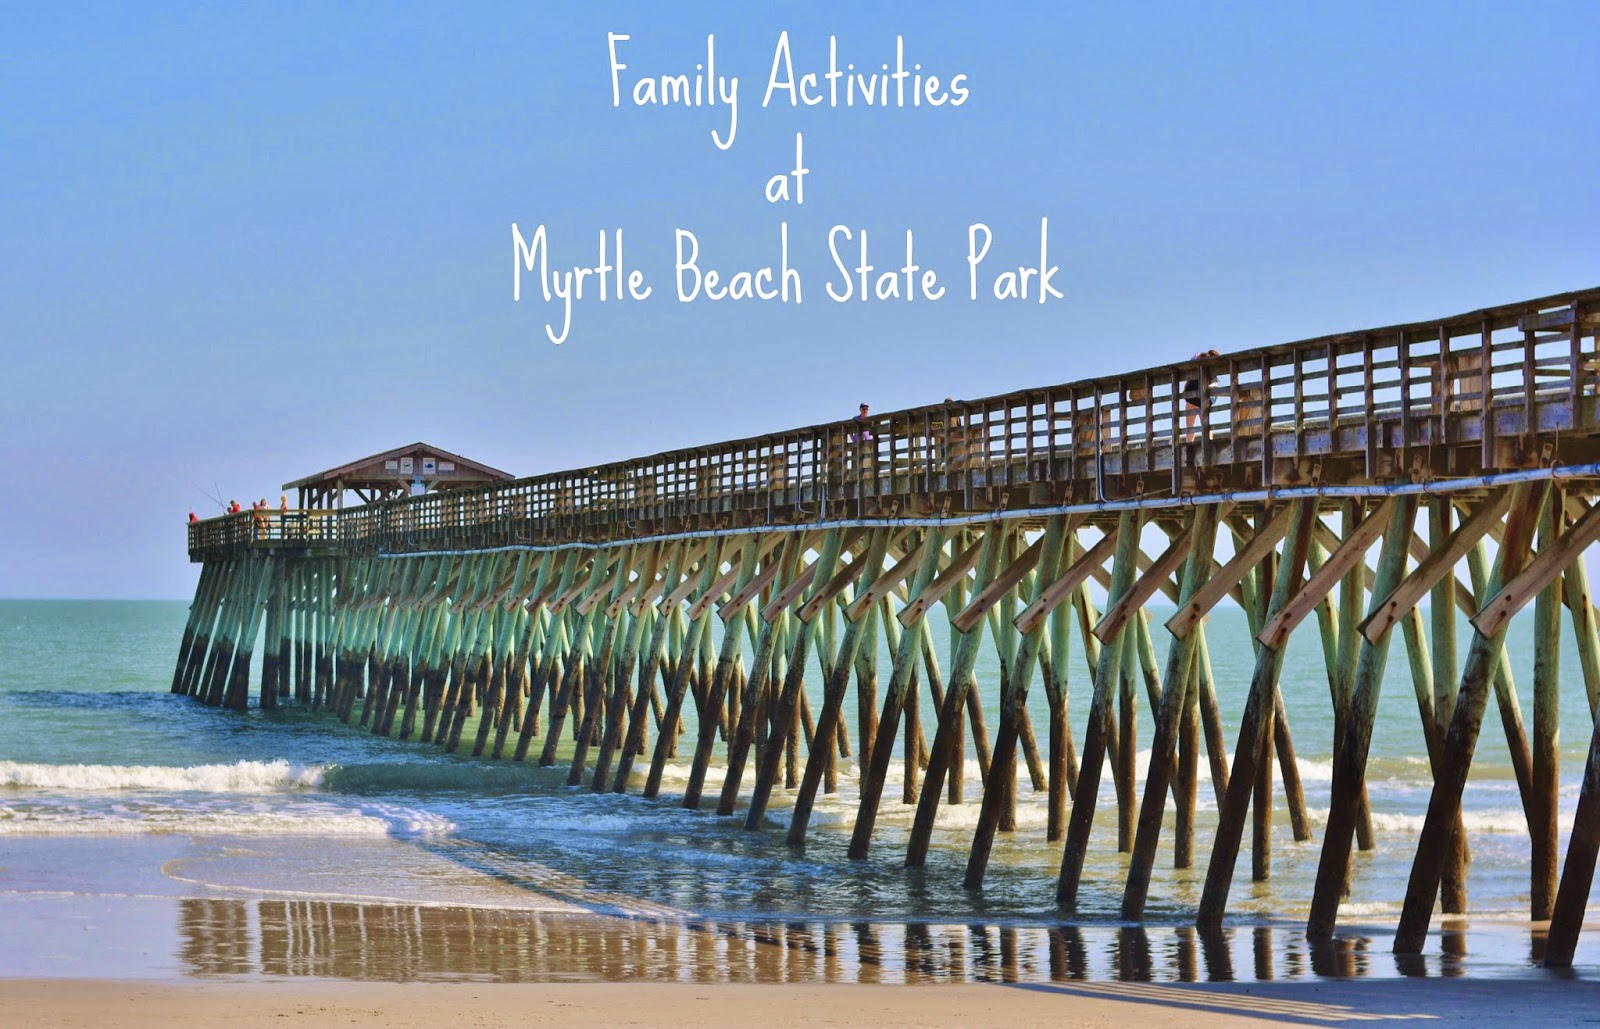 Family friendly activities at Myrtle Beach State Park. #travel #familytravel